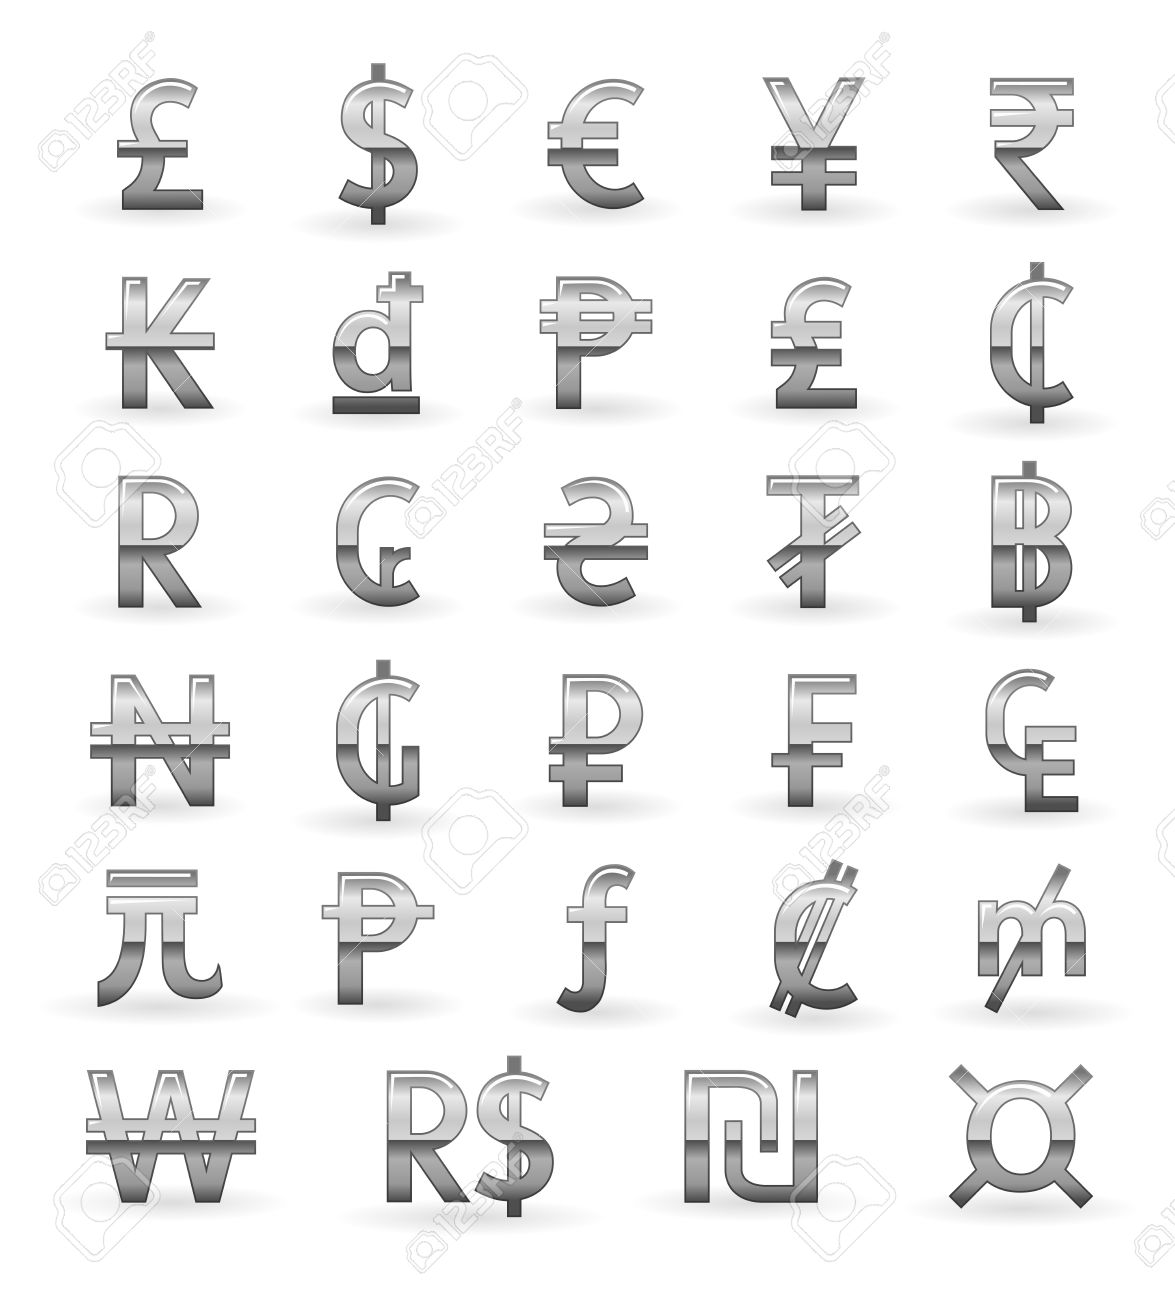 Silver currency symbols of the world royalty free cliparts vectors silver currency symbols of the world stock vector 12989366 buycottarizona Gallery